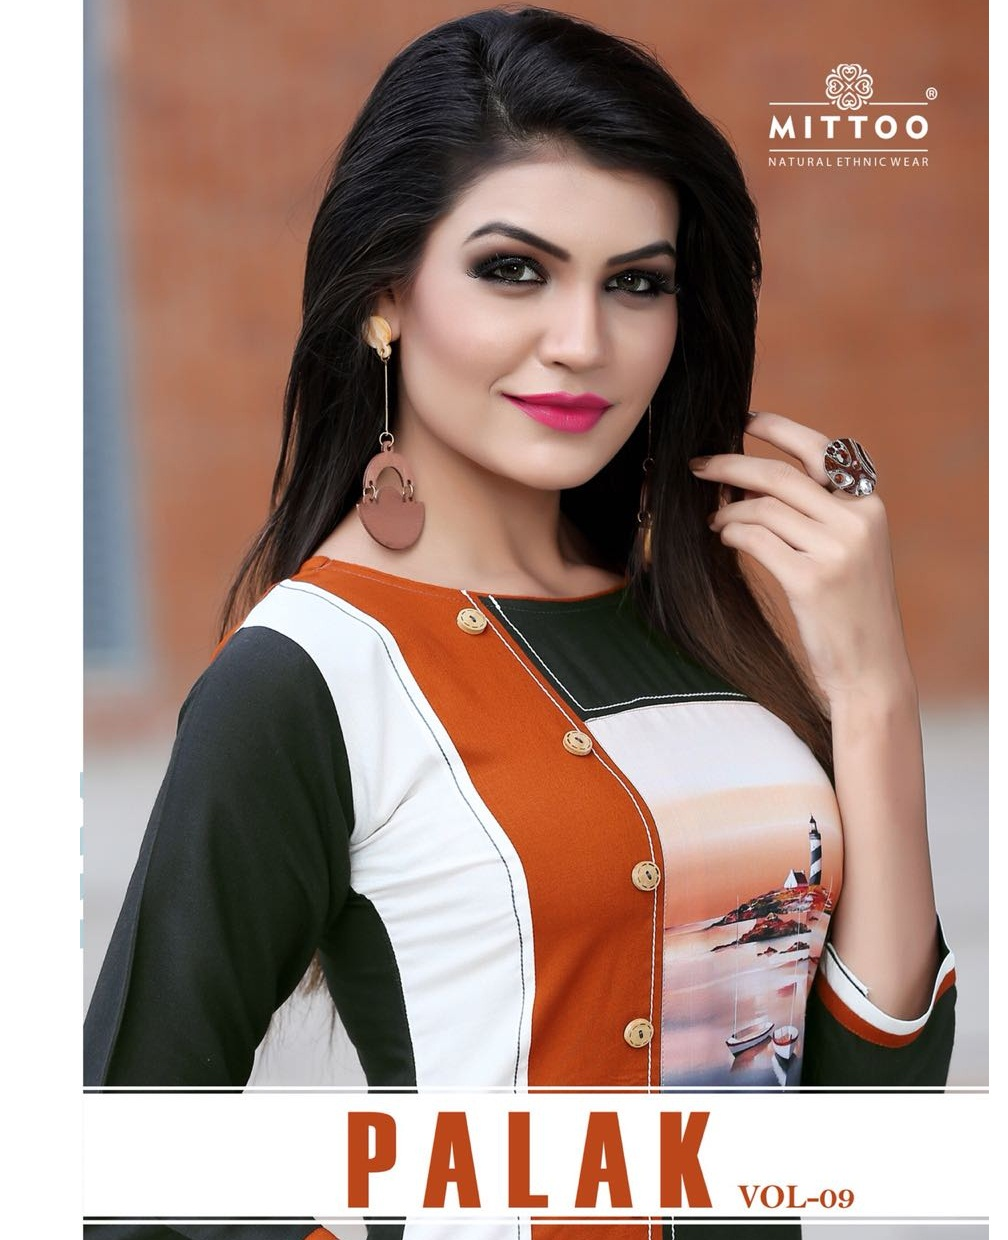 e57e772102 MITTOO PALAK VOL 9 – Heavy rayon fabric print with patterns stylish kurtis